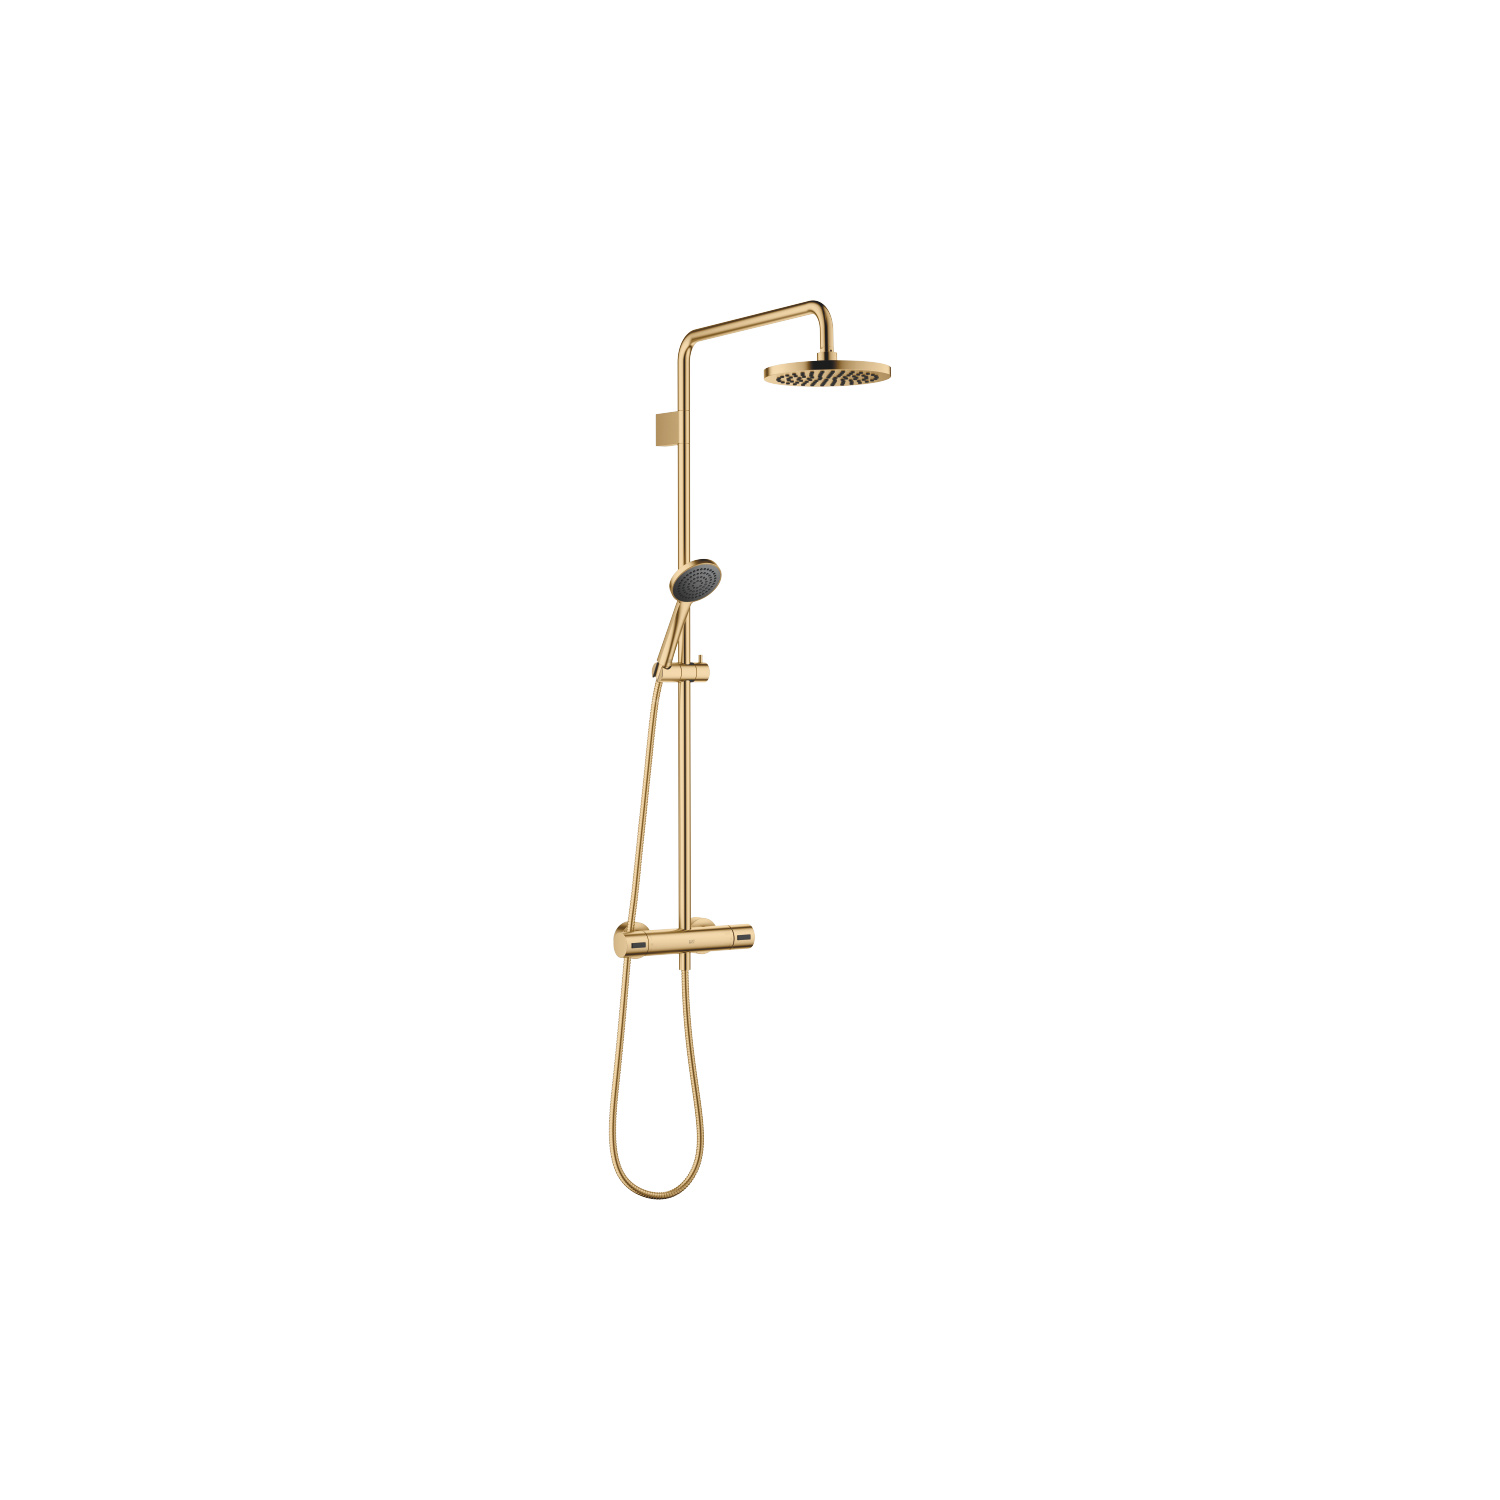 Showerpipe with shower thermostat - brushed Durabrass